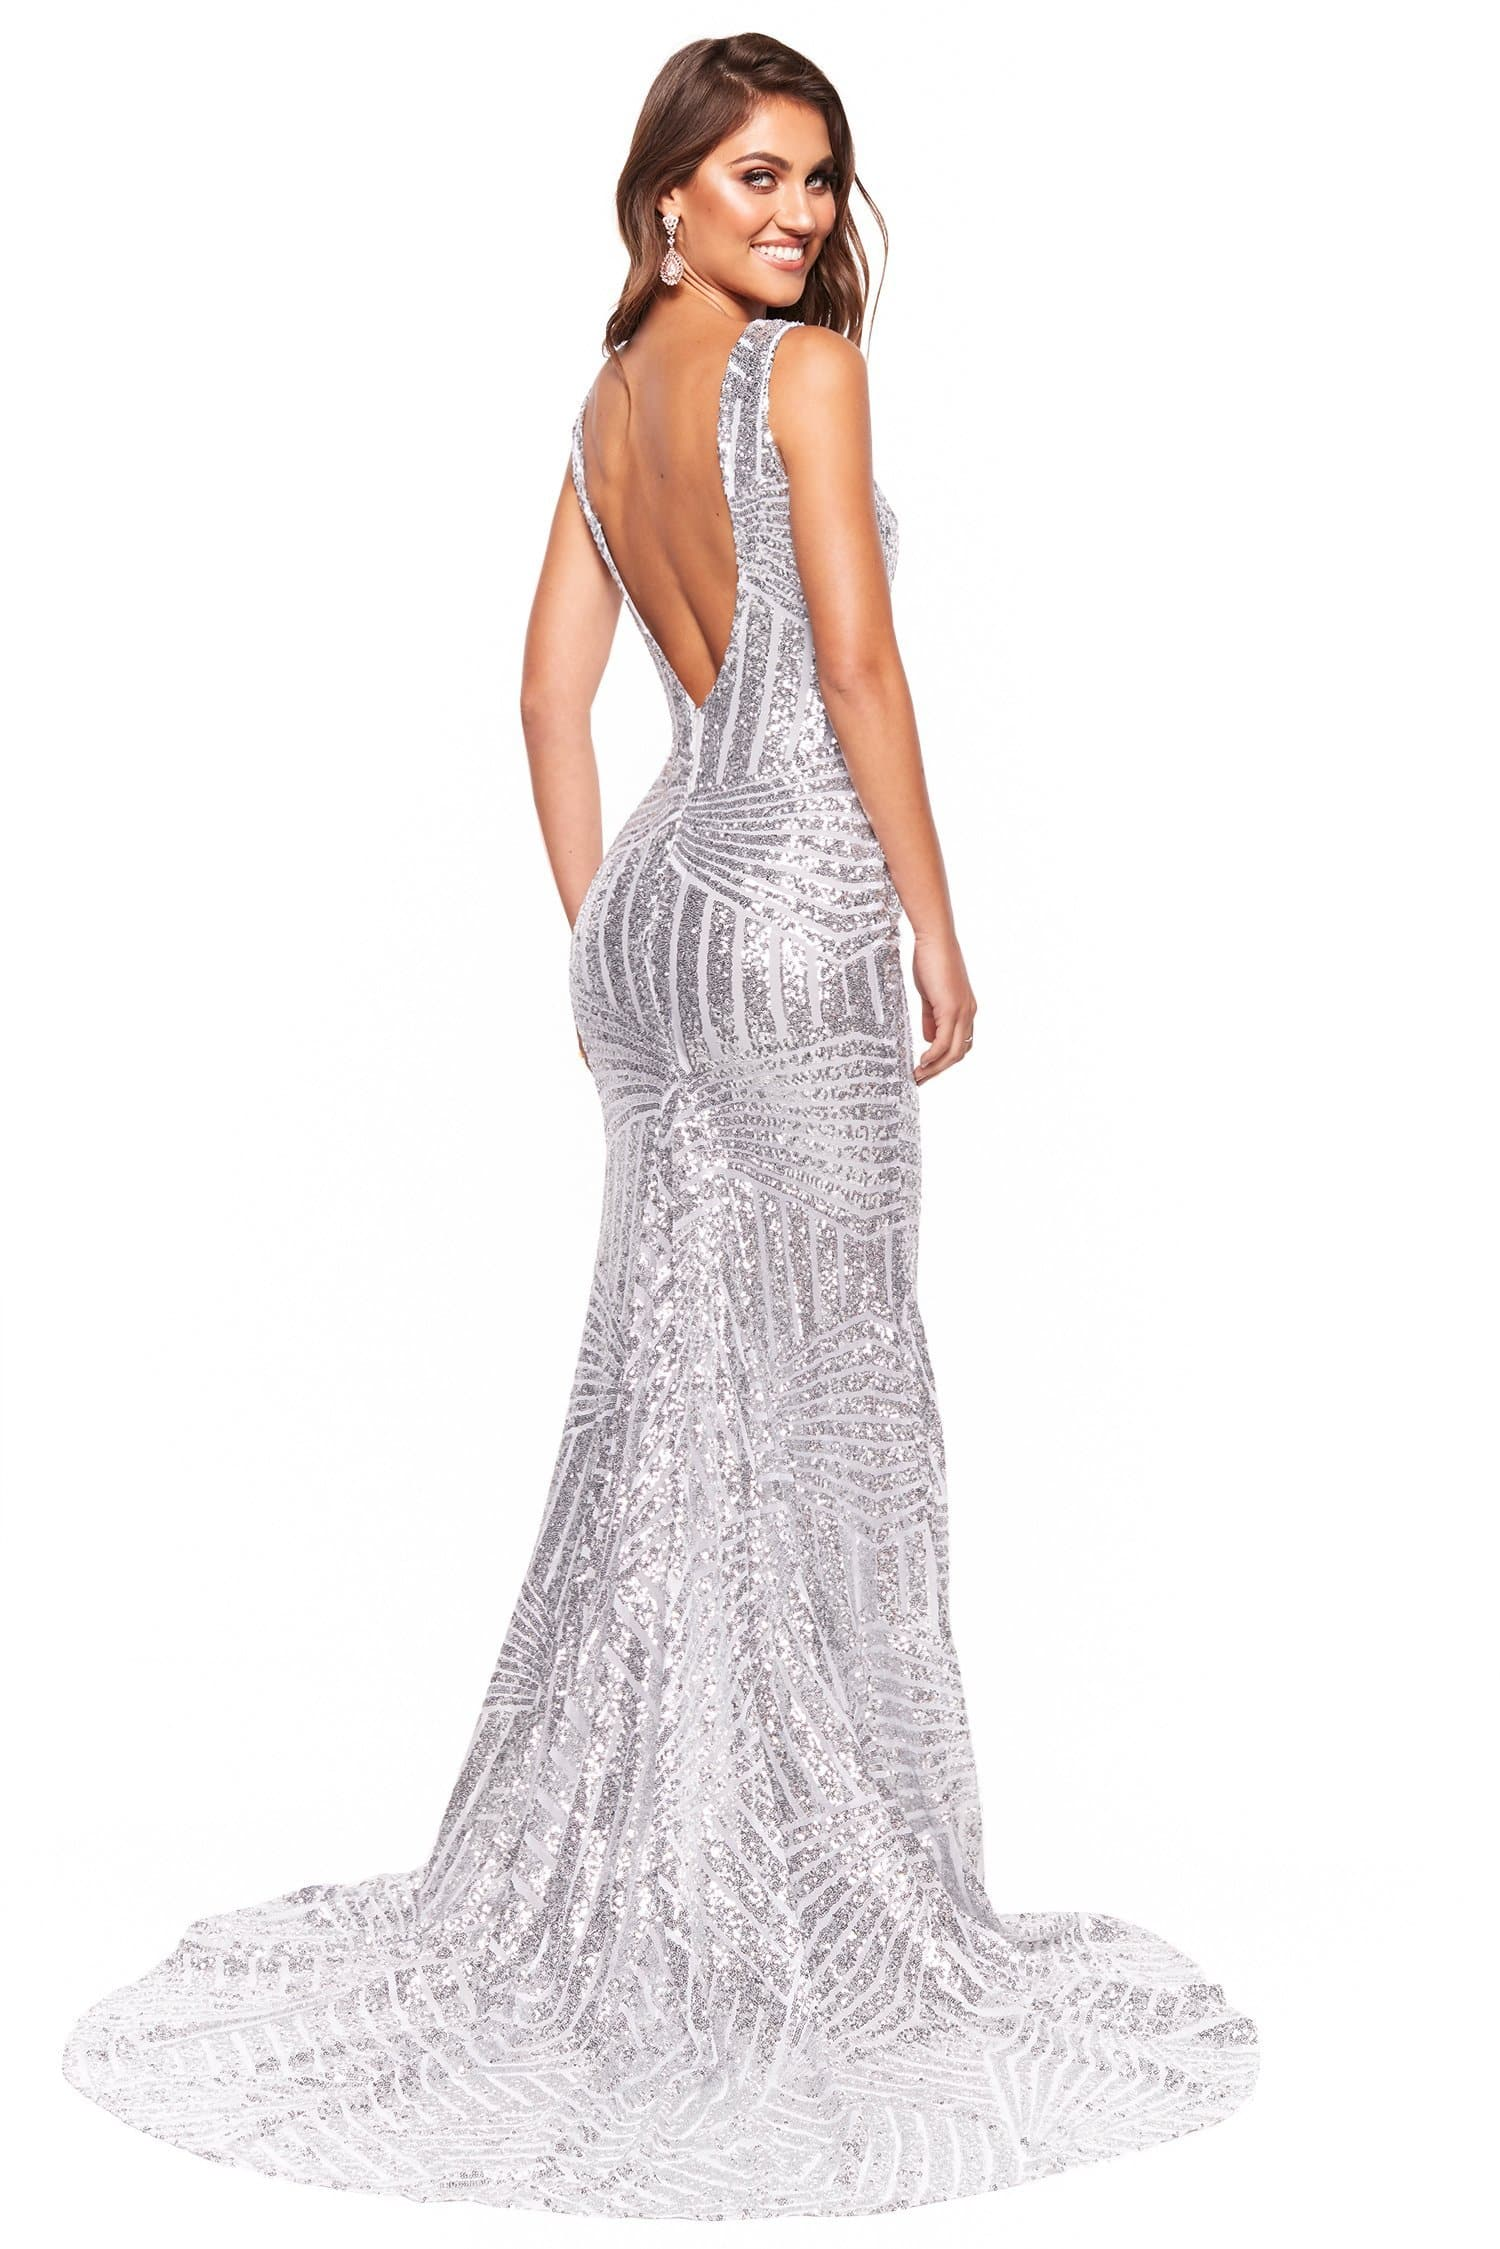 A&N Luxe Serena - Silver Sequin Mermaid Gown with Plunge Neck & Low Back